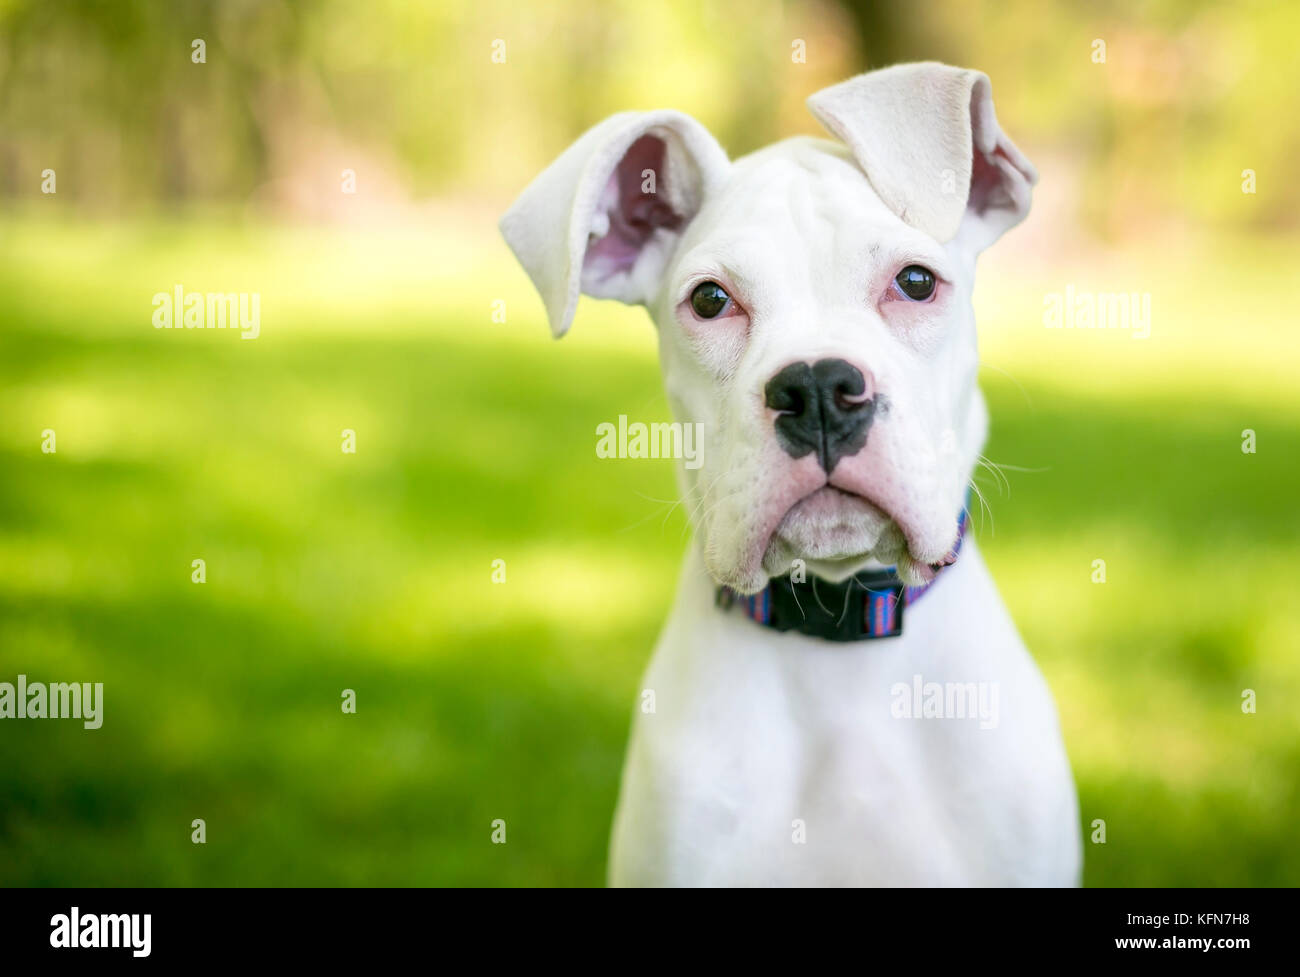 A white Great Dane puppy with large floppy ears - Stock Image